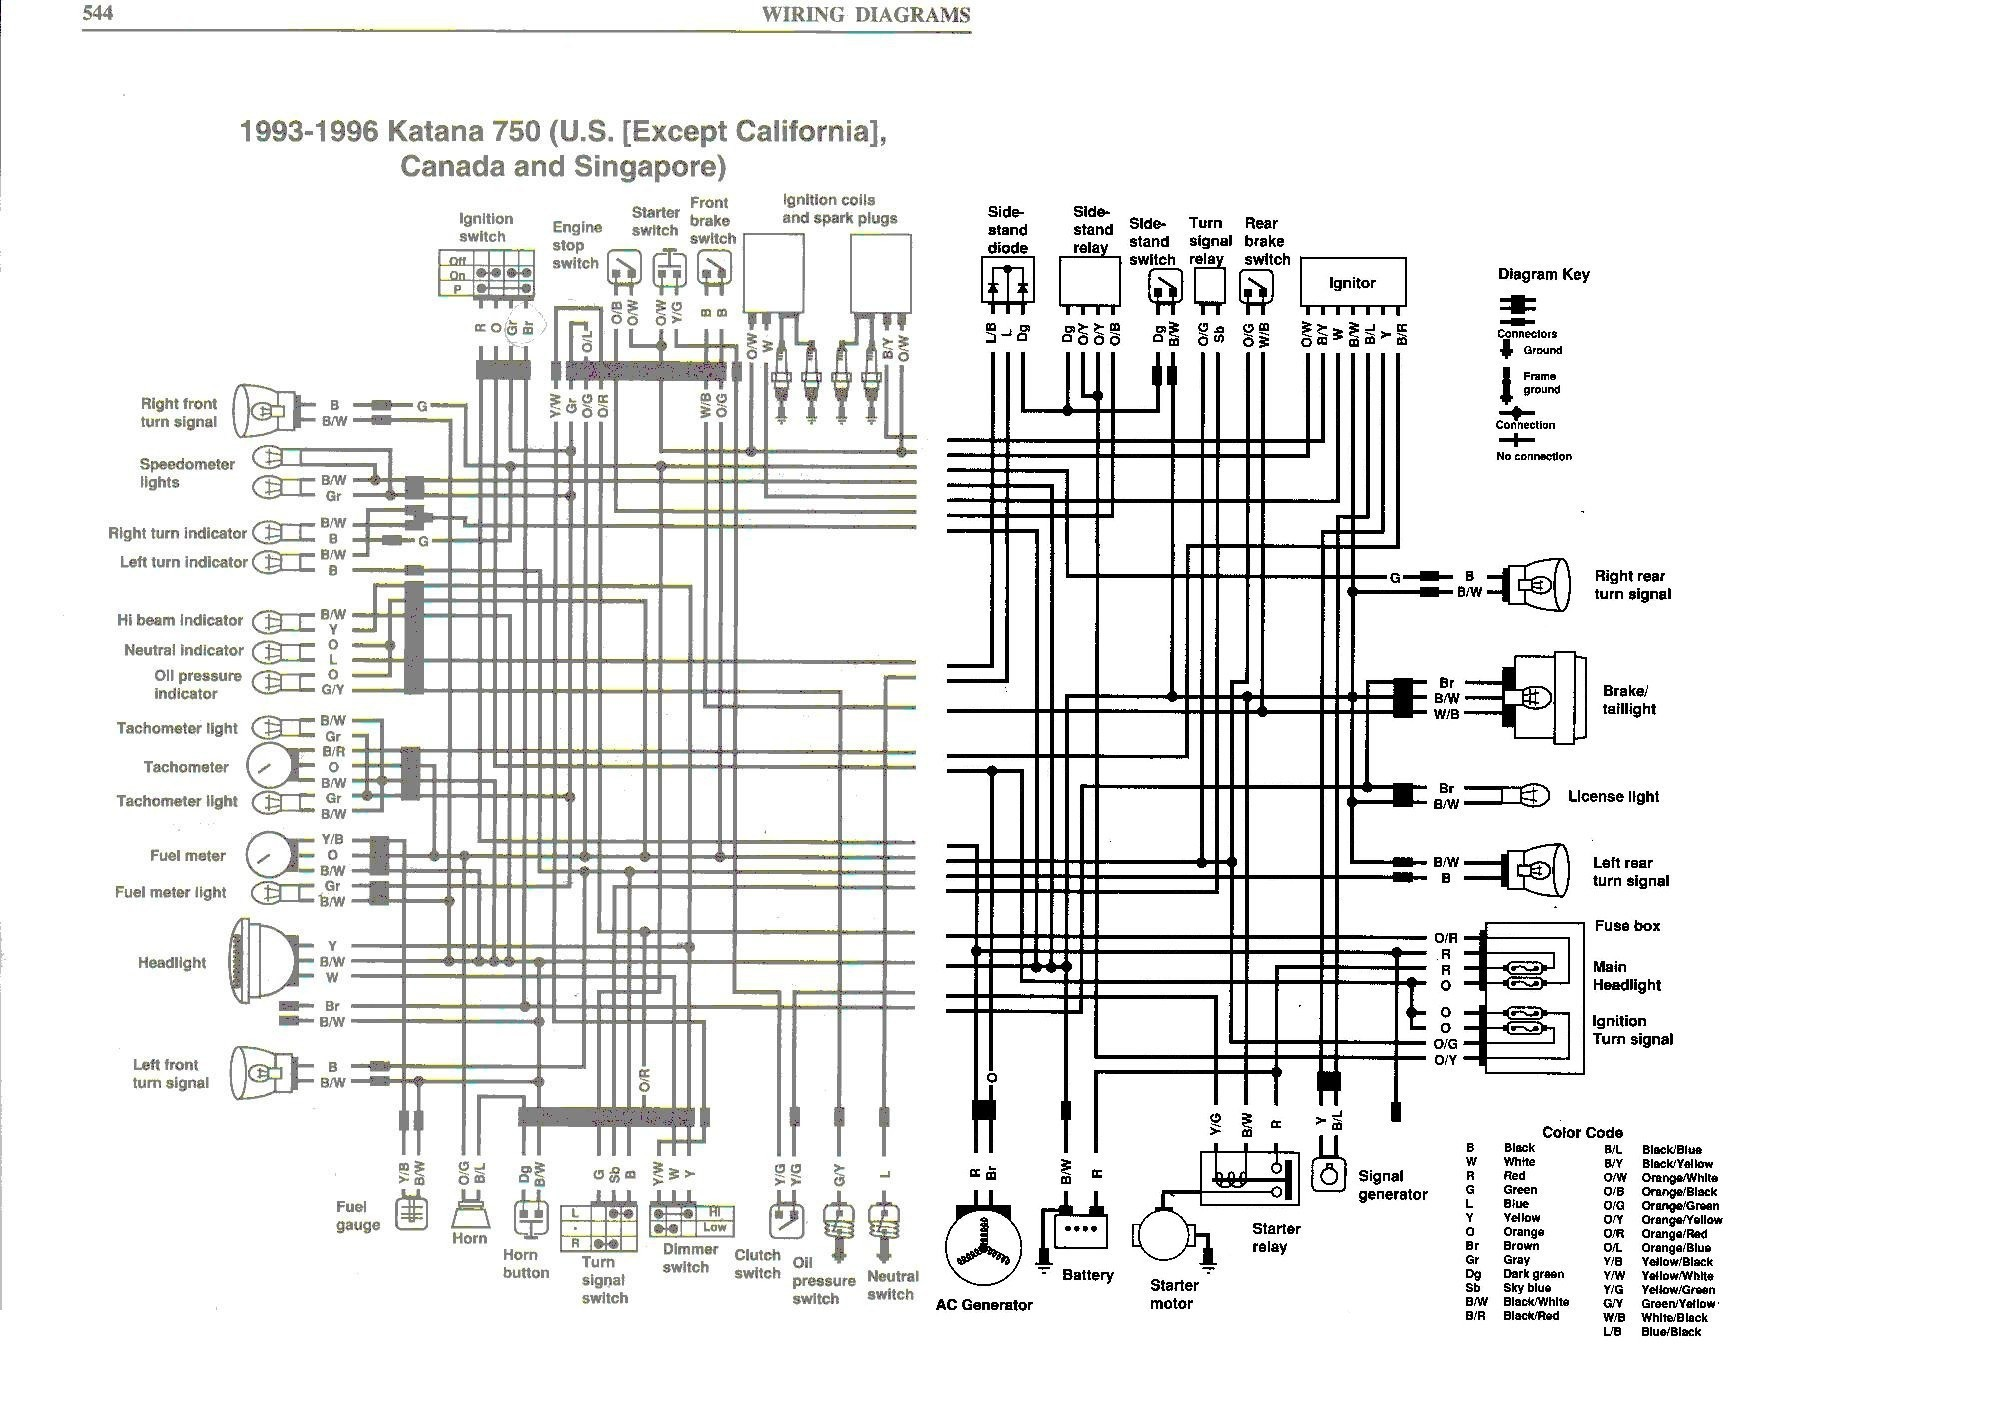 suzuki bandit wiring diagram 1937 ford vin number location